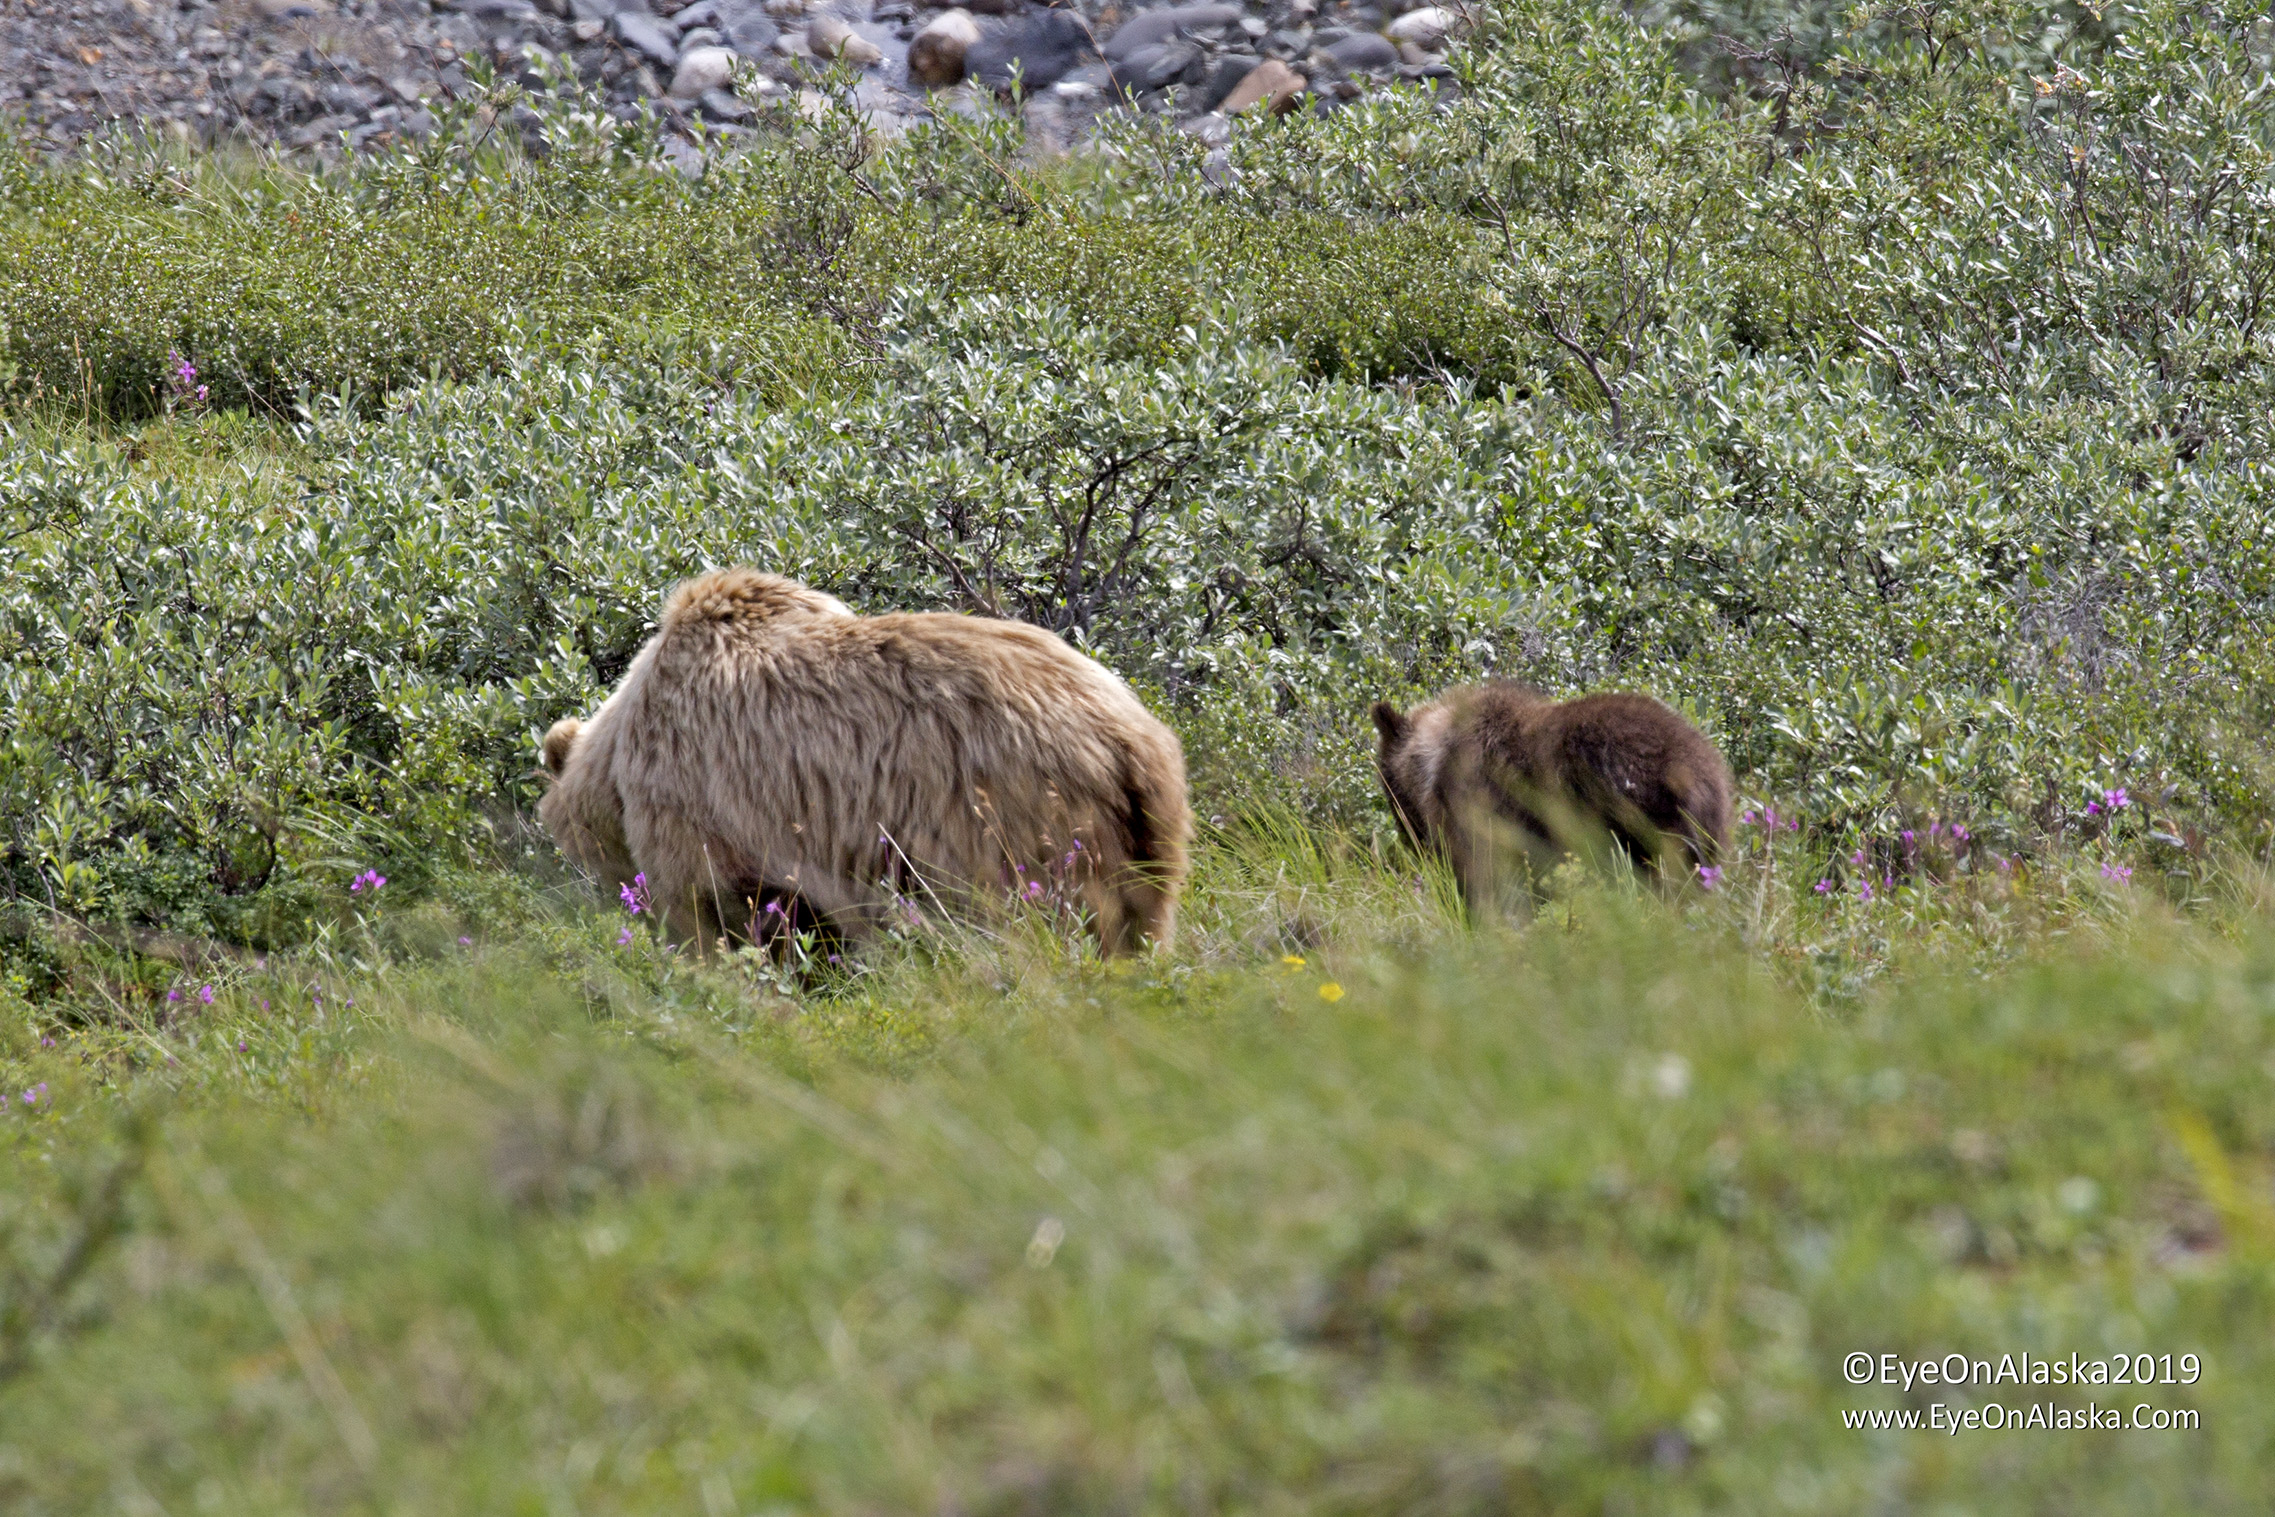 By the time the bus got to the bears they had moved downhill and into the willows, so never got any good shots of them.  But it was good to see a another spring cub, which keeps the population stable if they can make it through their first year.